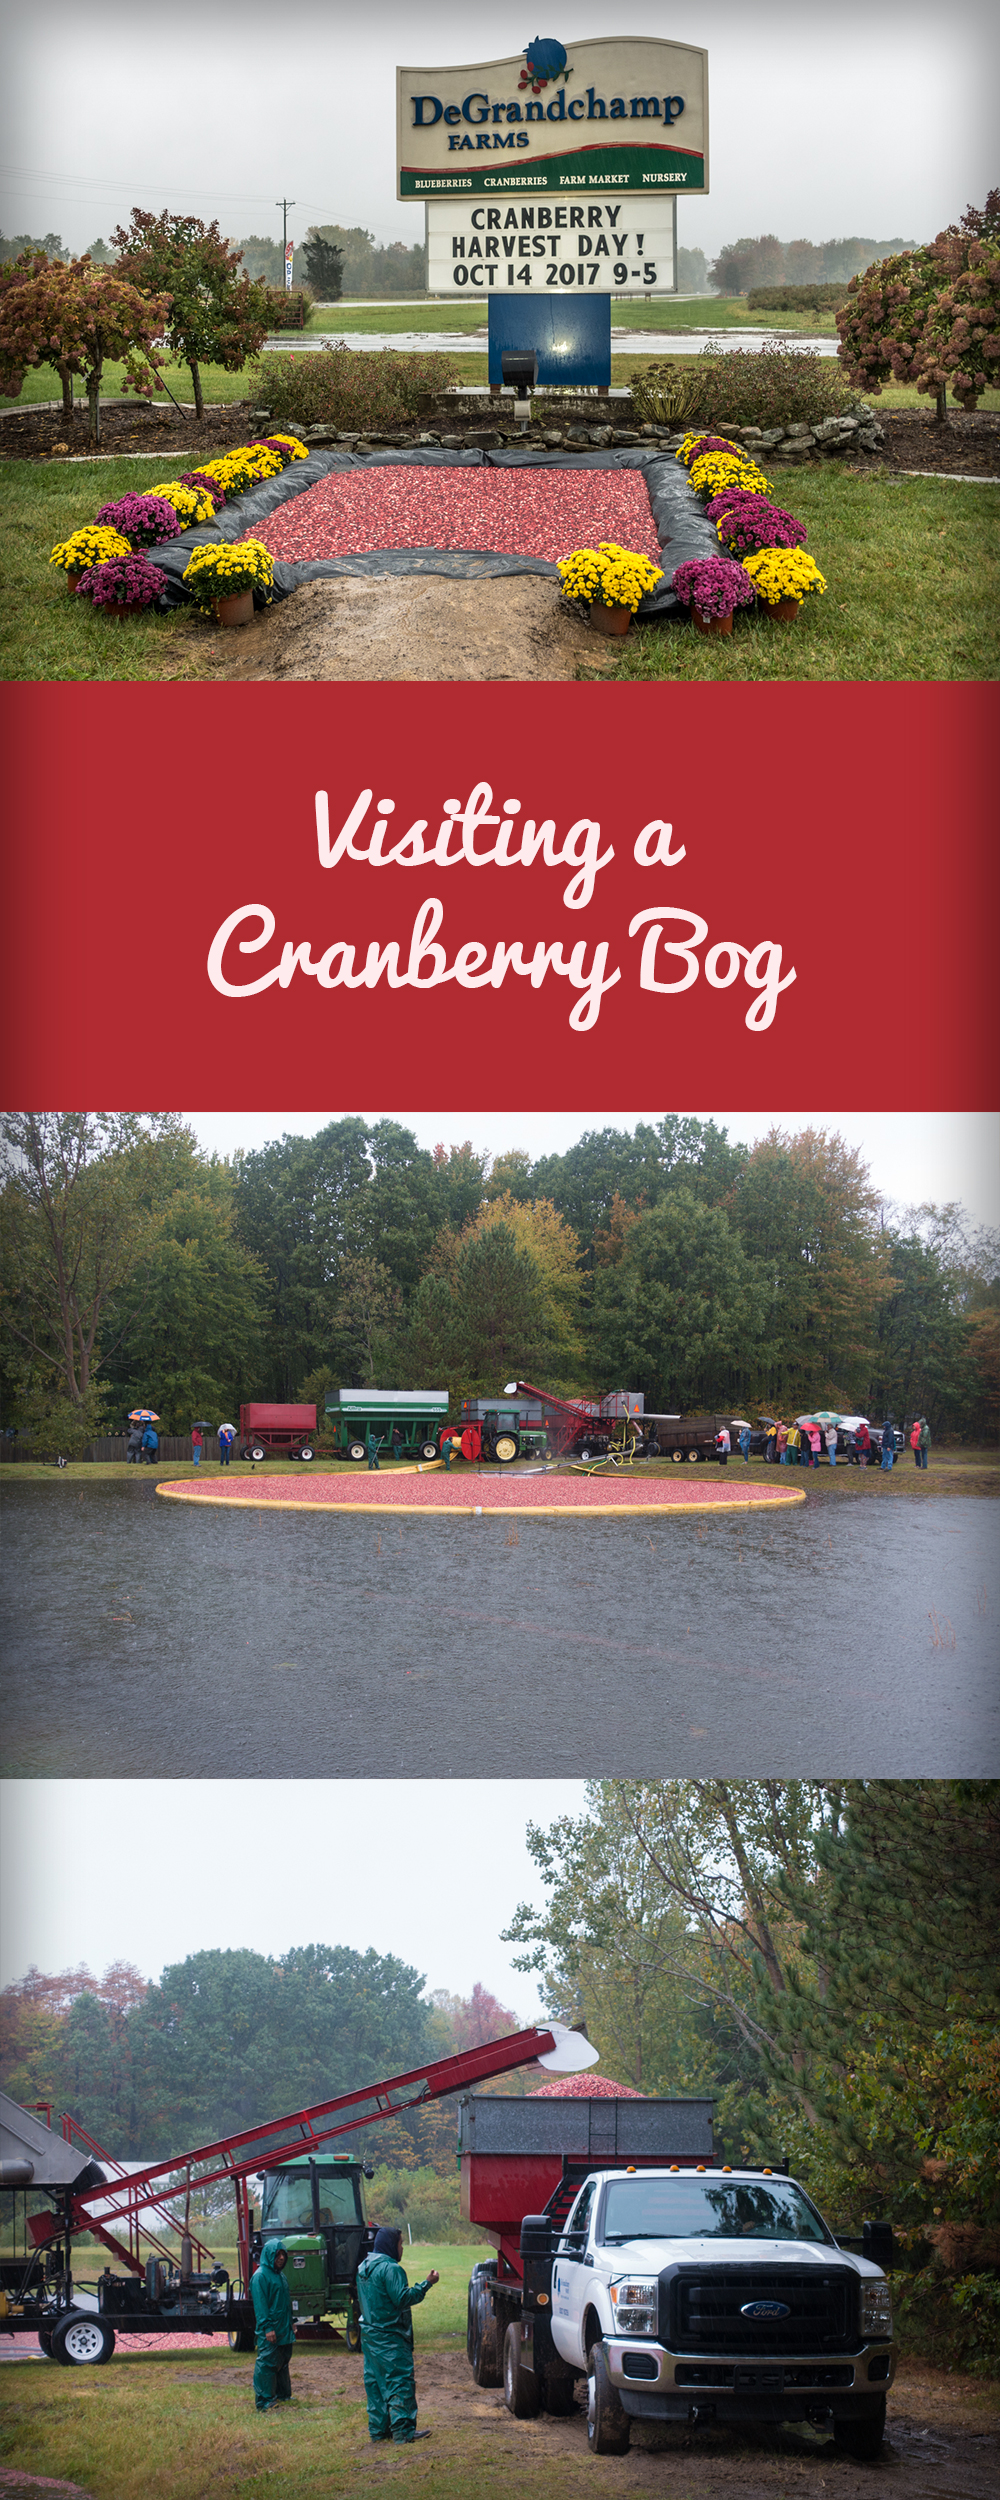 Visting a Cranberry Bog: See all the work that goes into harvesting cranberries!